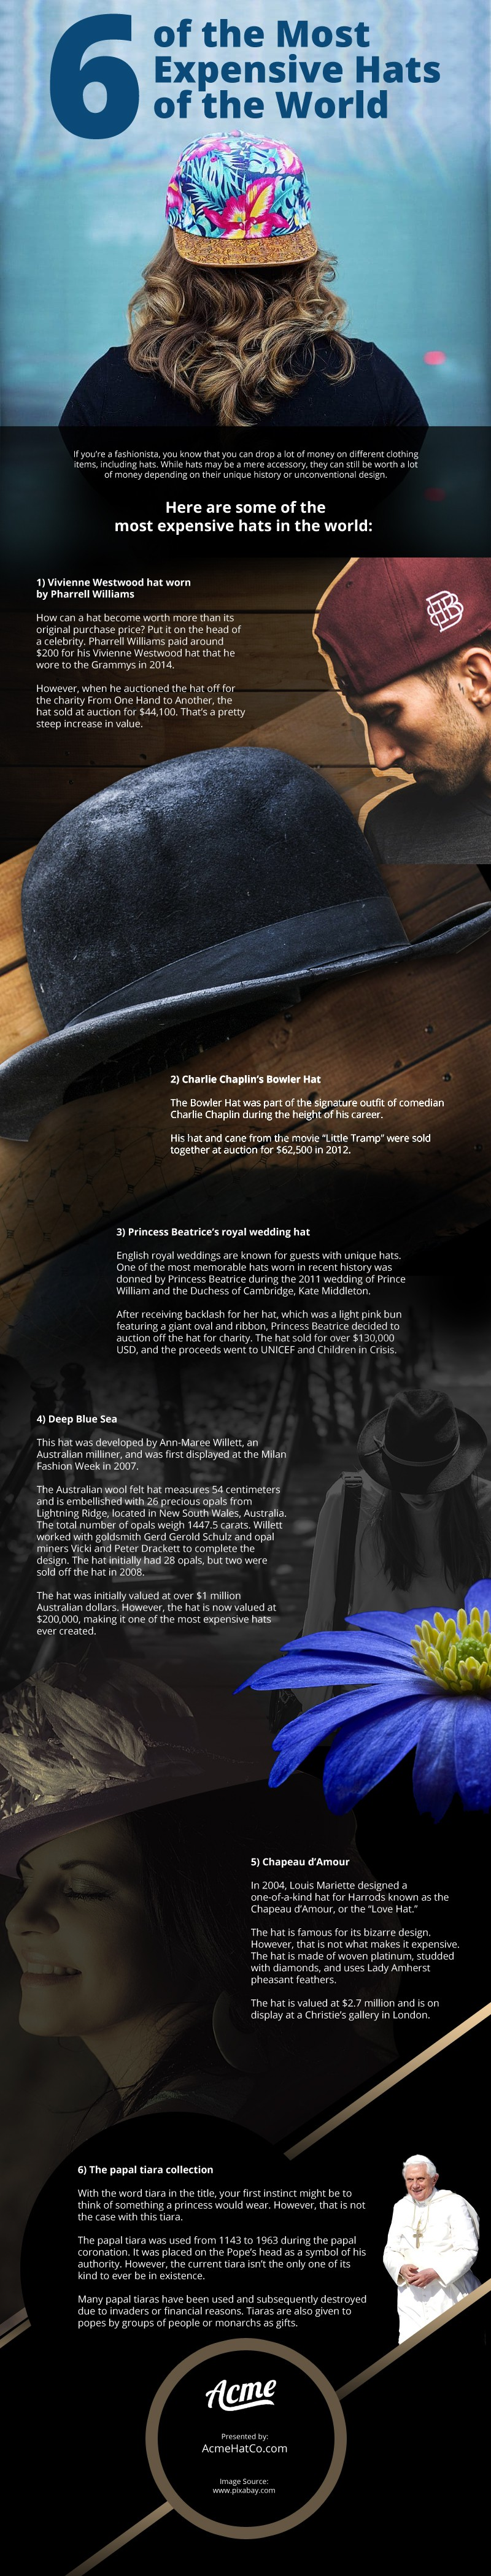 6 of the Most Expensive Hats of the World Infographic [infographic]